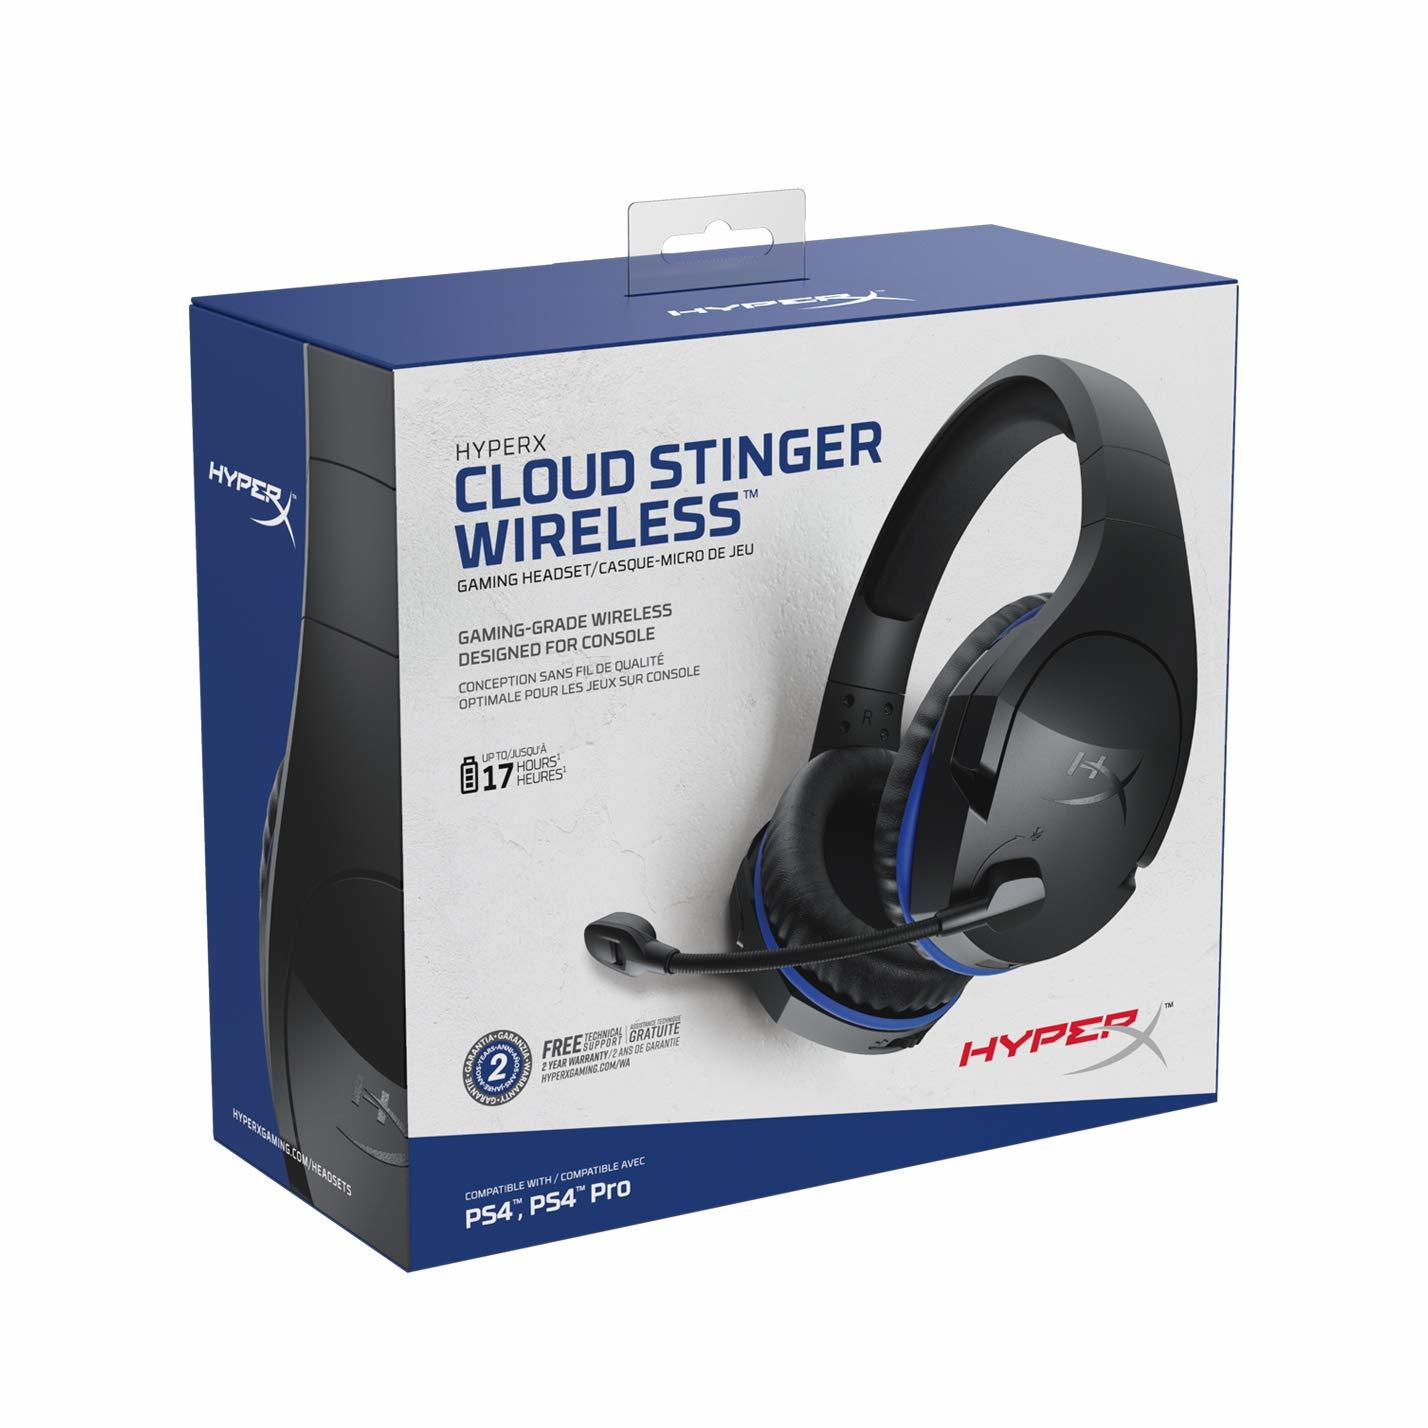 HyperX Stinger Wireless Gaming Headset for PS4 image